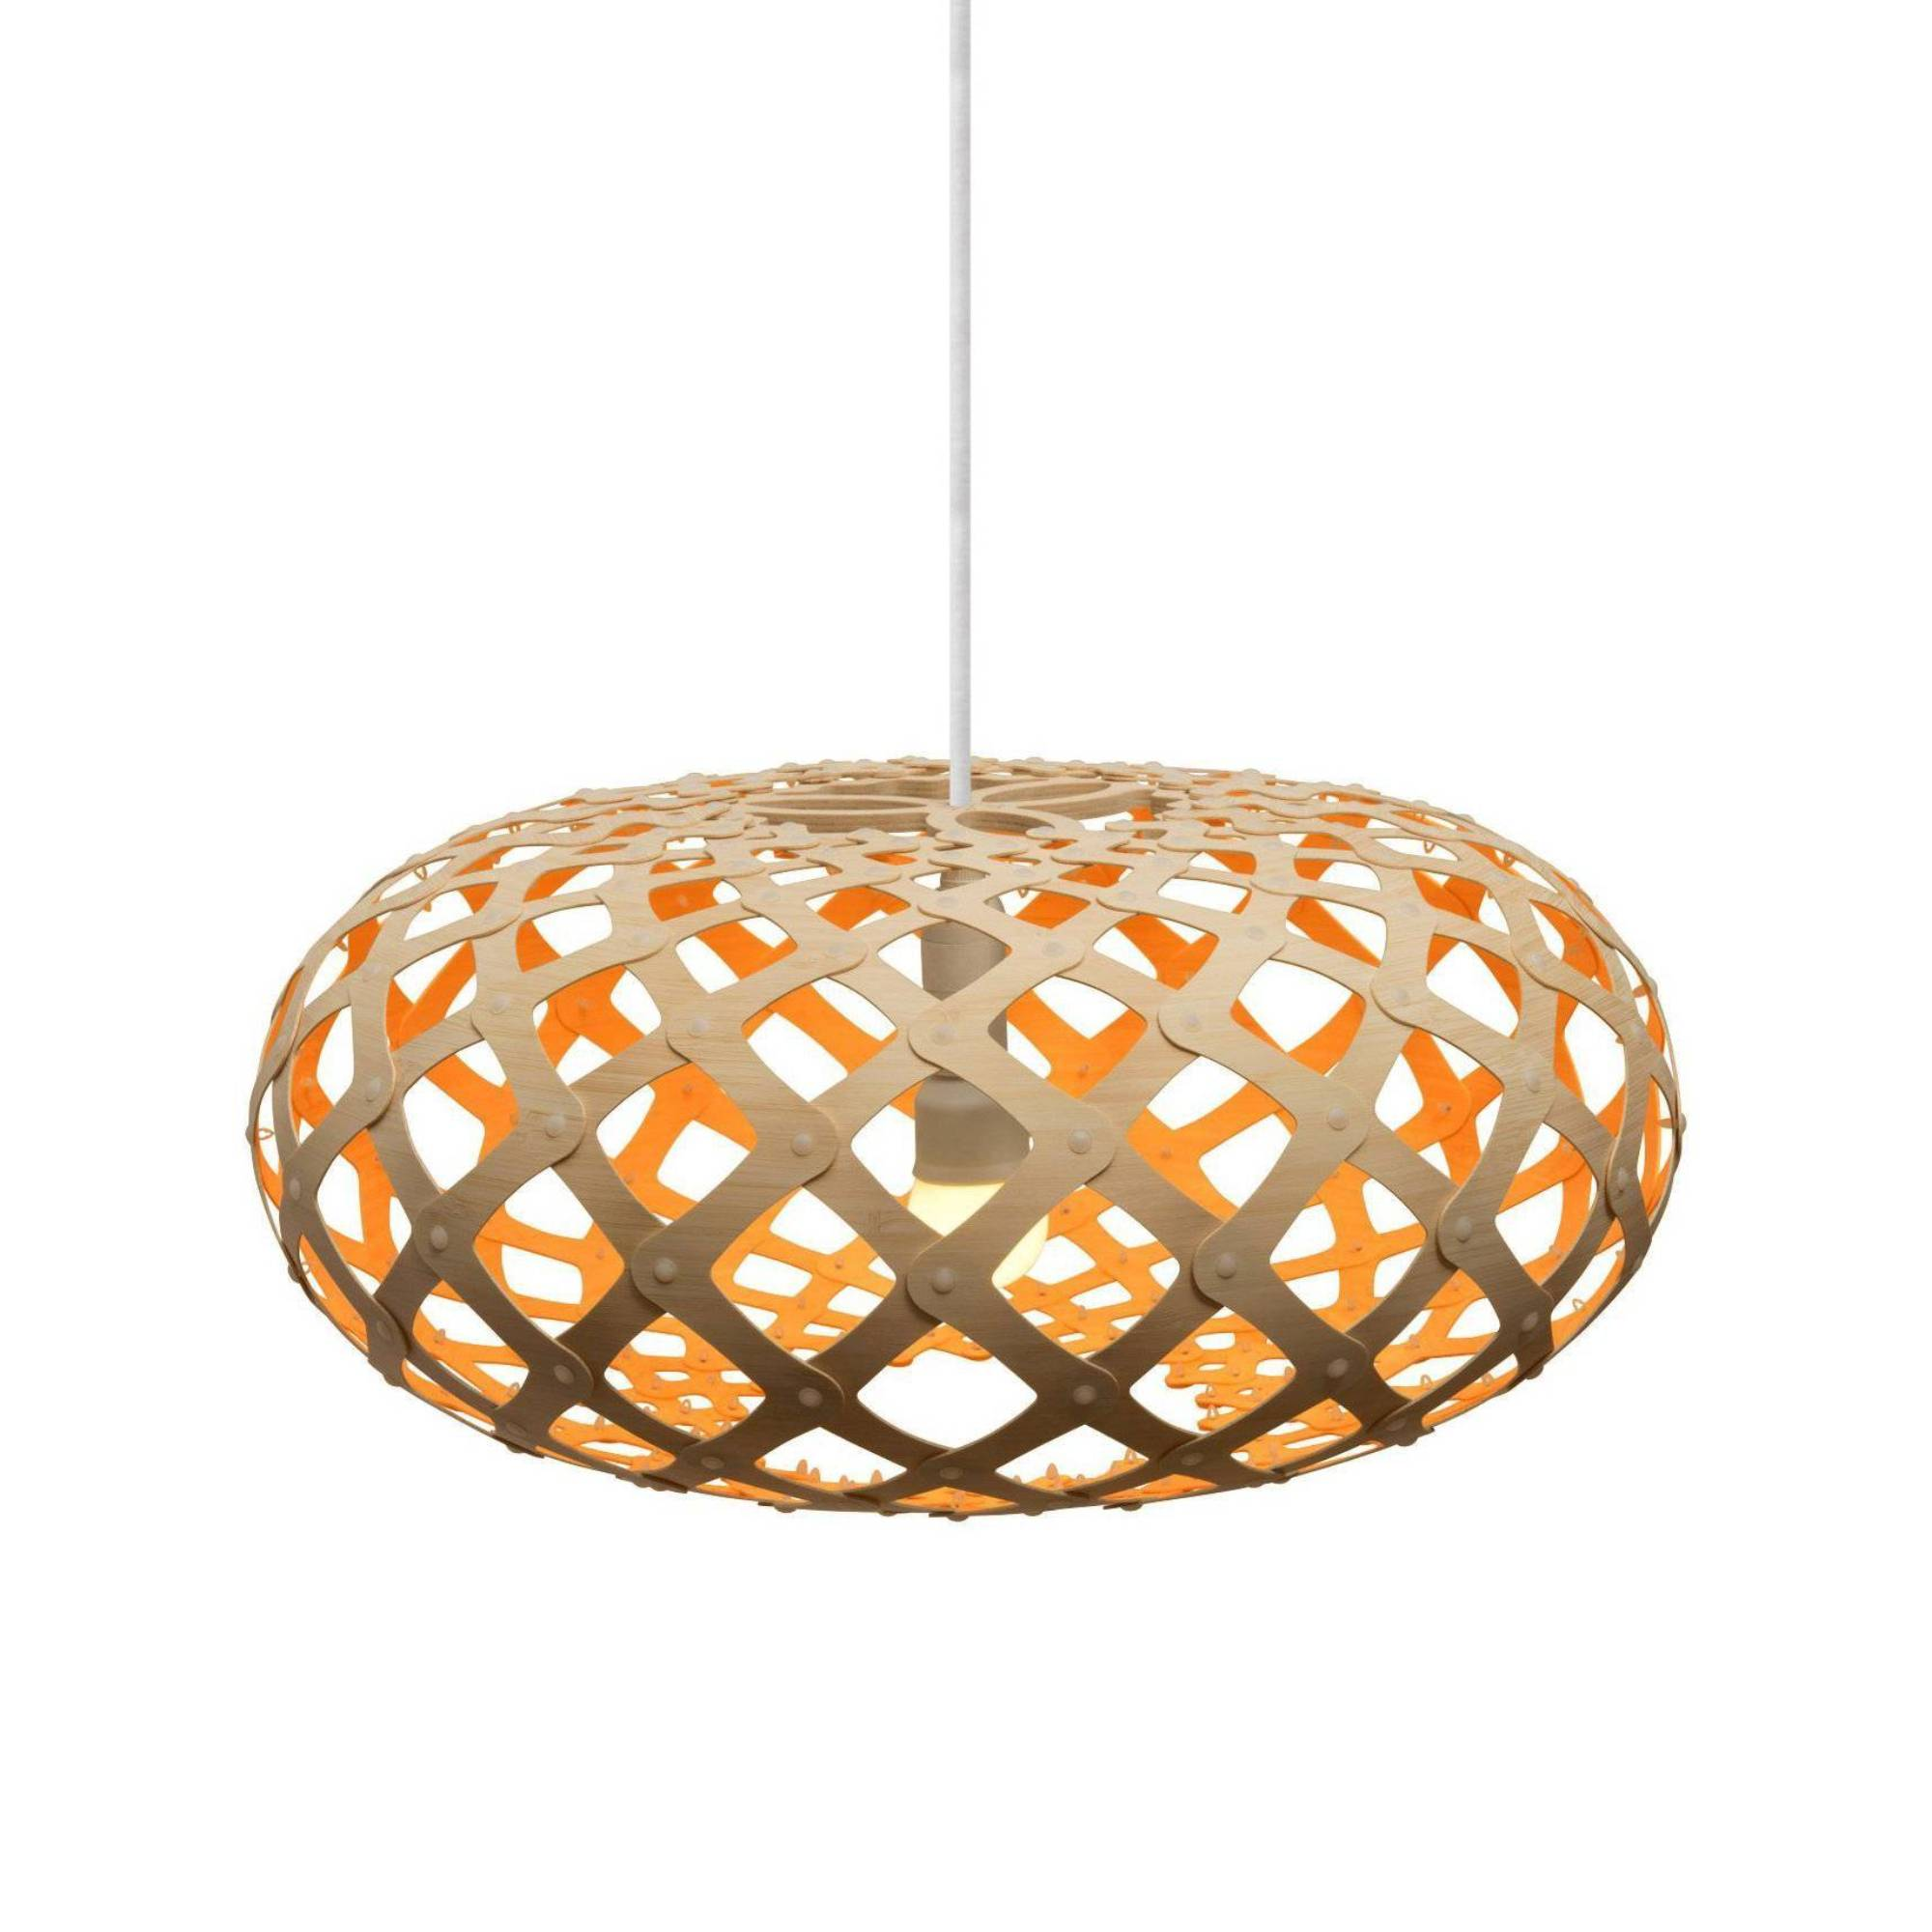 Kina Pendant Light: 600 + Orange